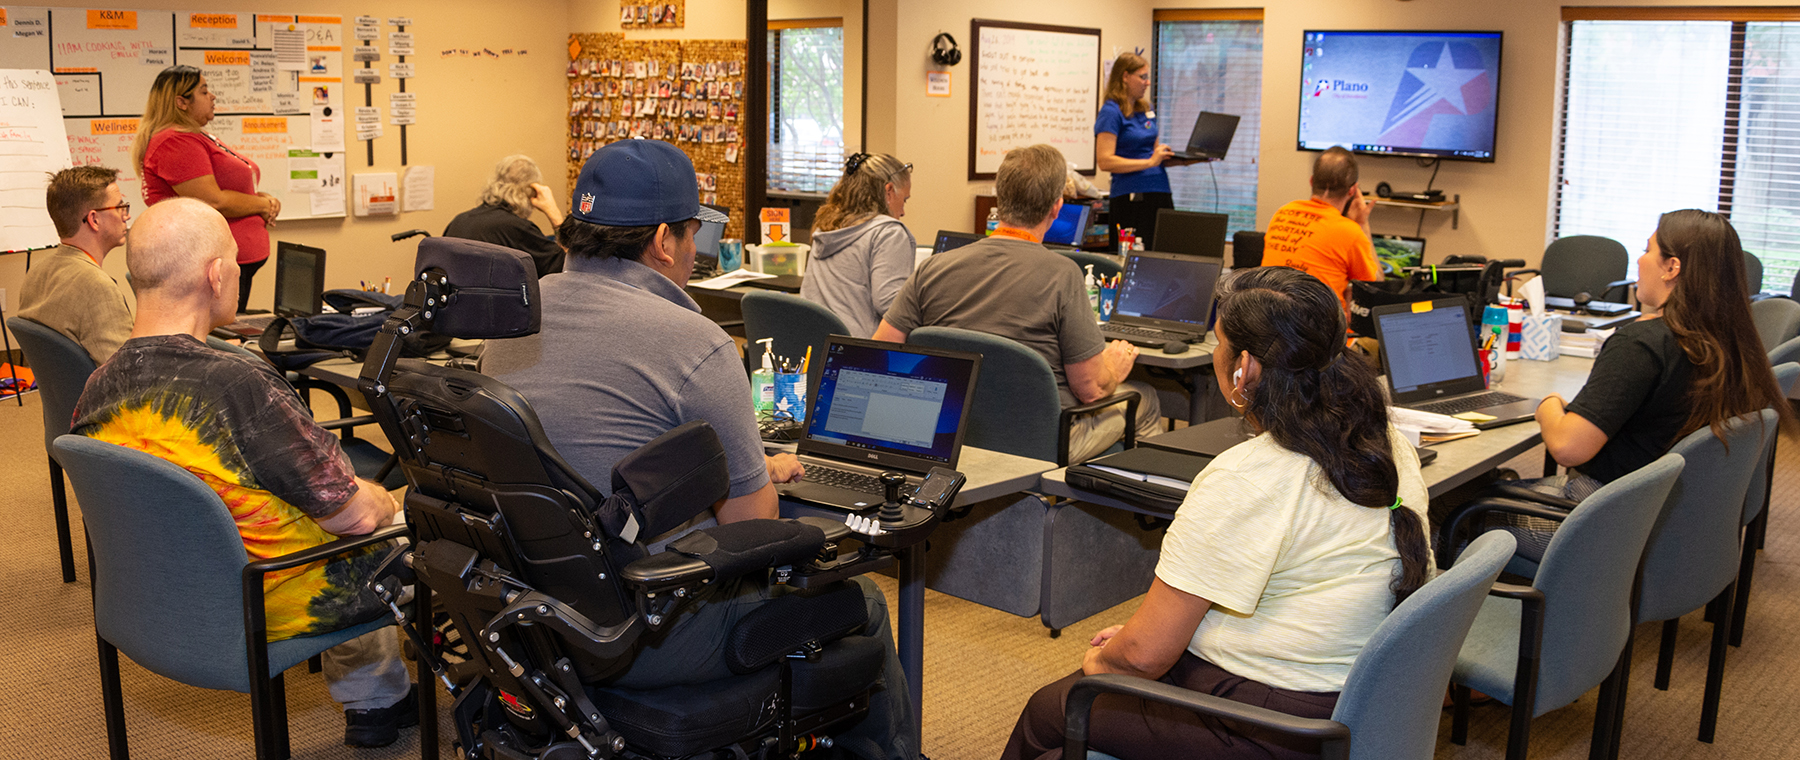 Plano Public Library staffers teach a technology class at the Brain Injury Network of Dallas